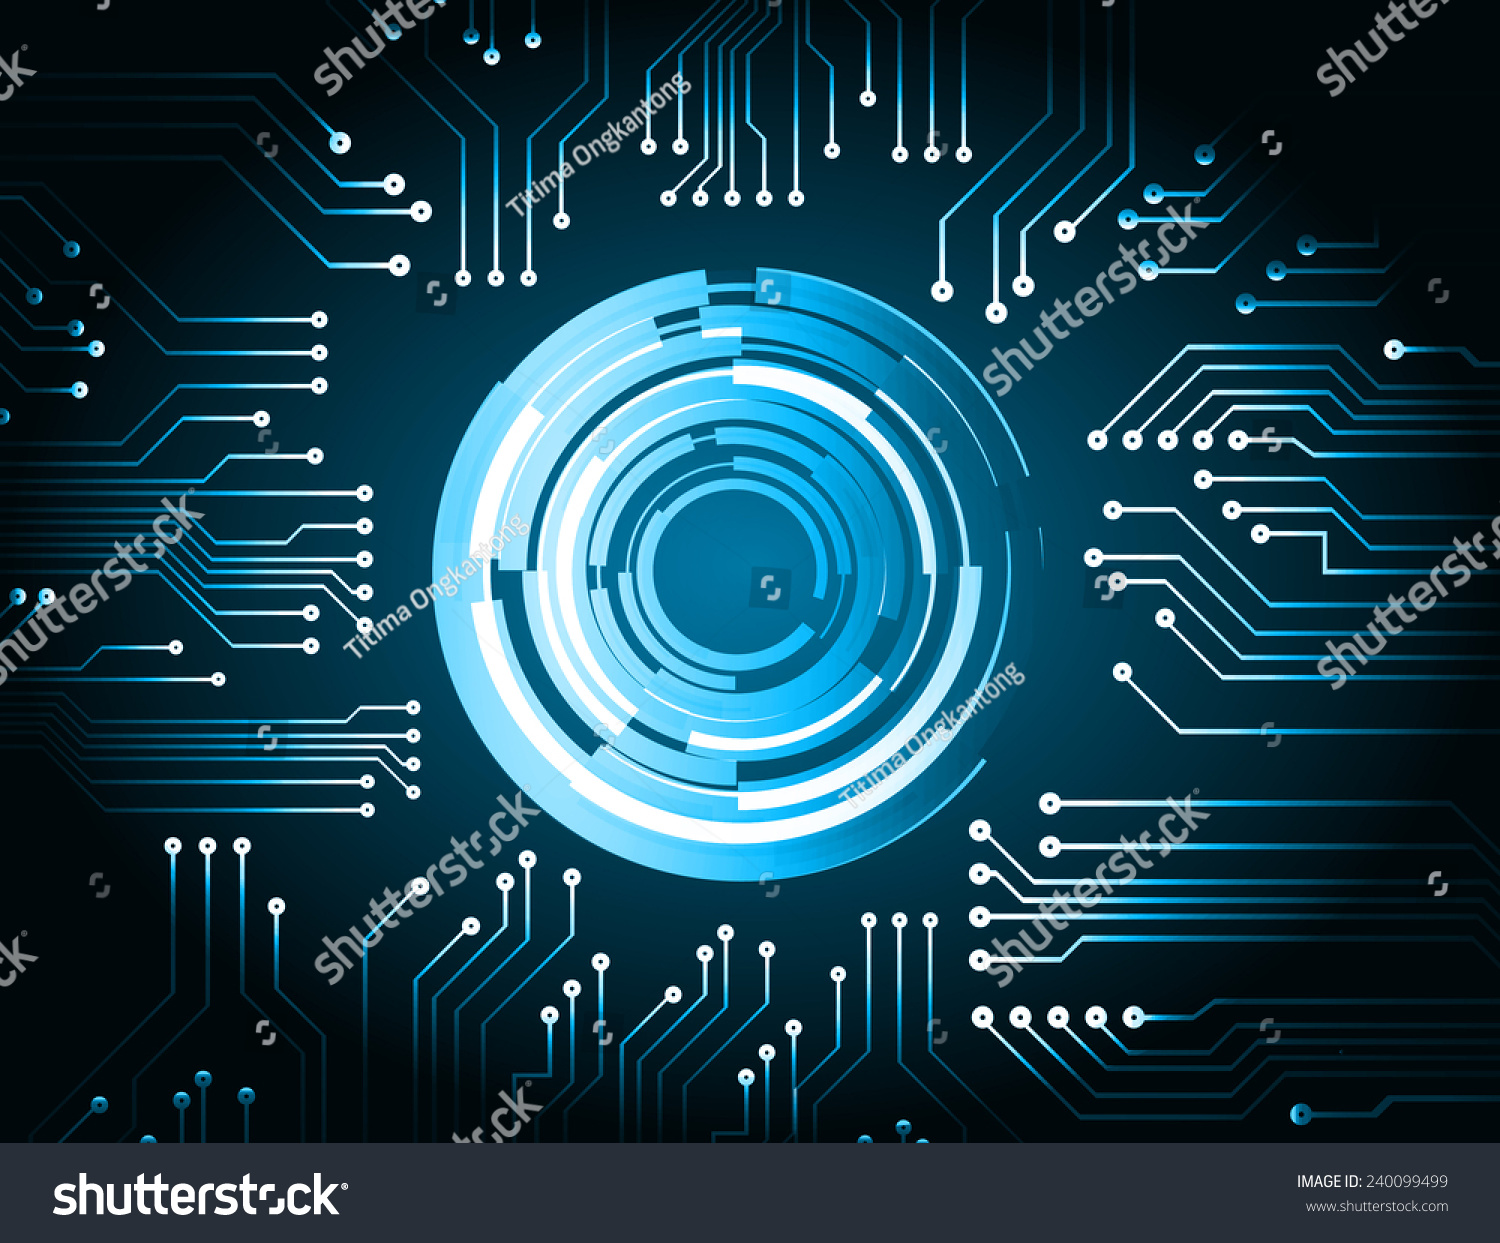 Similiar Blue Circuit Board Graphic Keywords Stock Images Image 31188634 Abstract Vector Background High Tech Vectores En Wallpapersafari